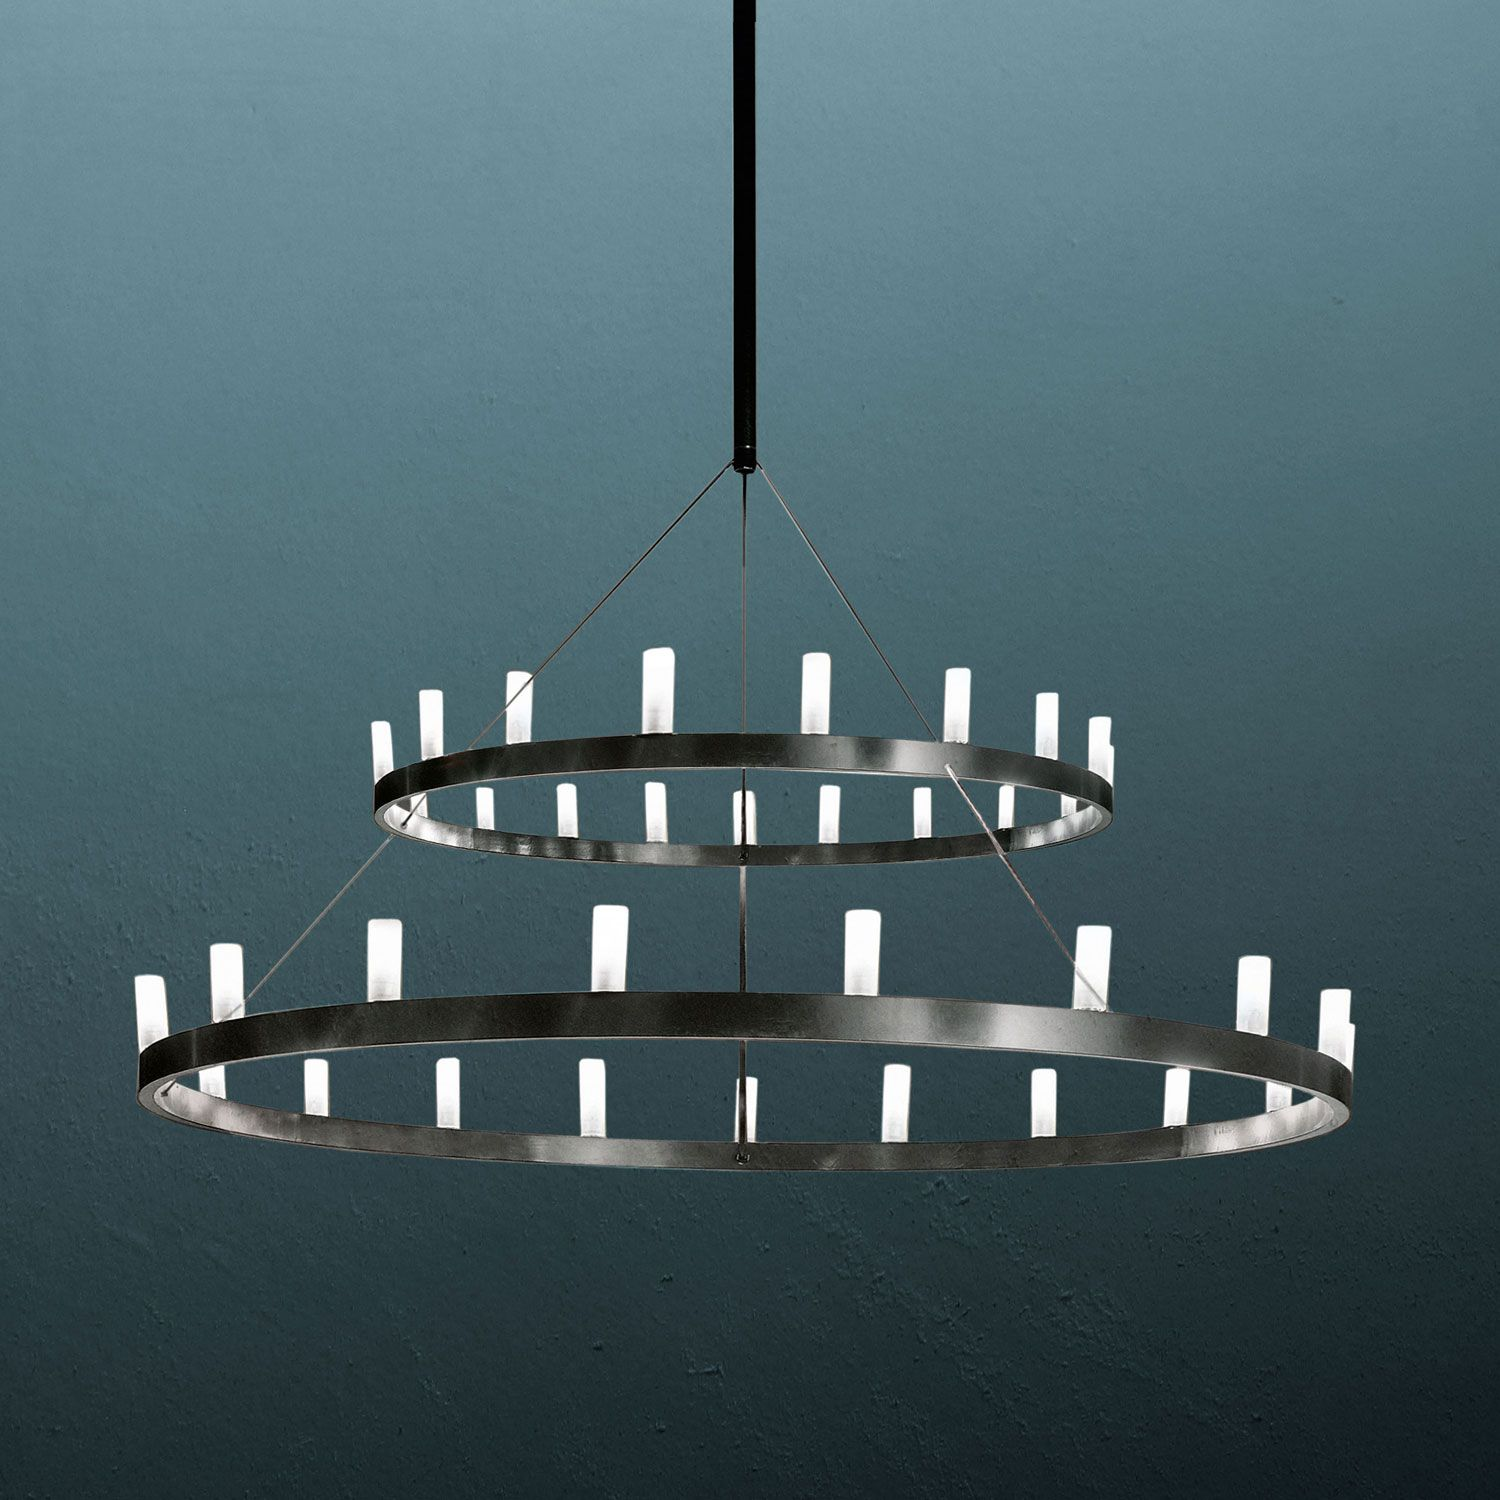 Chandelier double lighting suspension lamp structure in grey product chandelier manufacturer fontanaarte designer david chipperfield year 2004 architonic id 2060539 arubaitofo Images